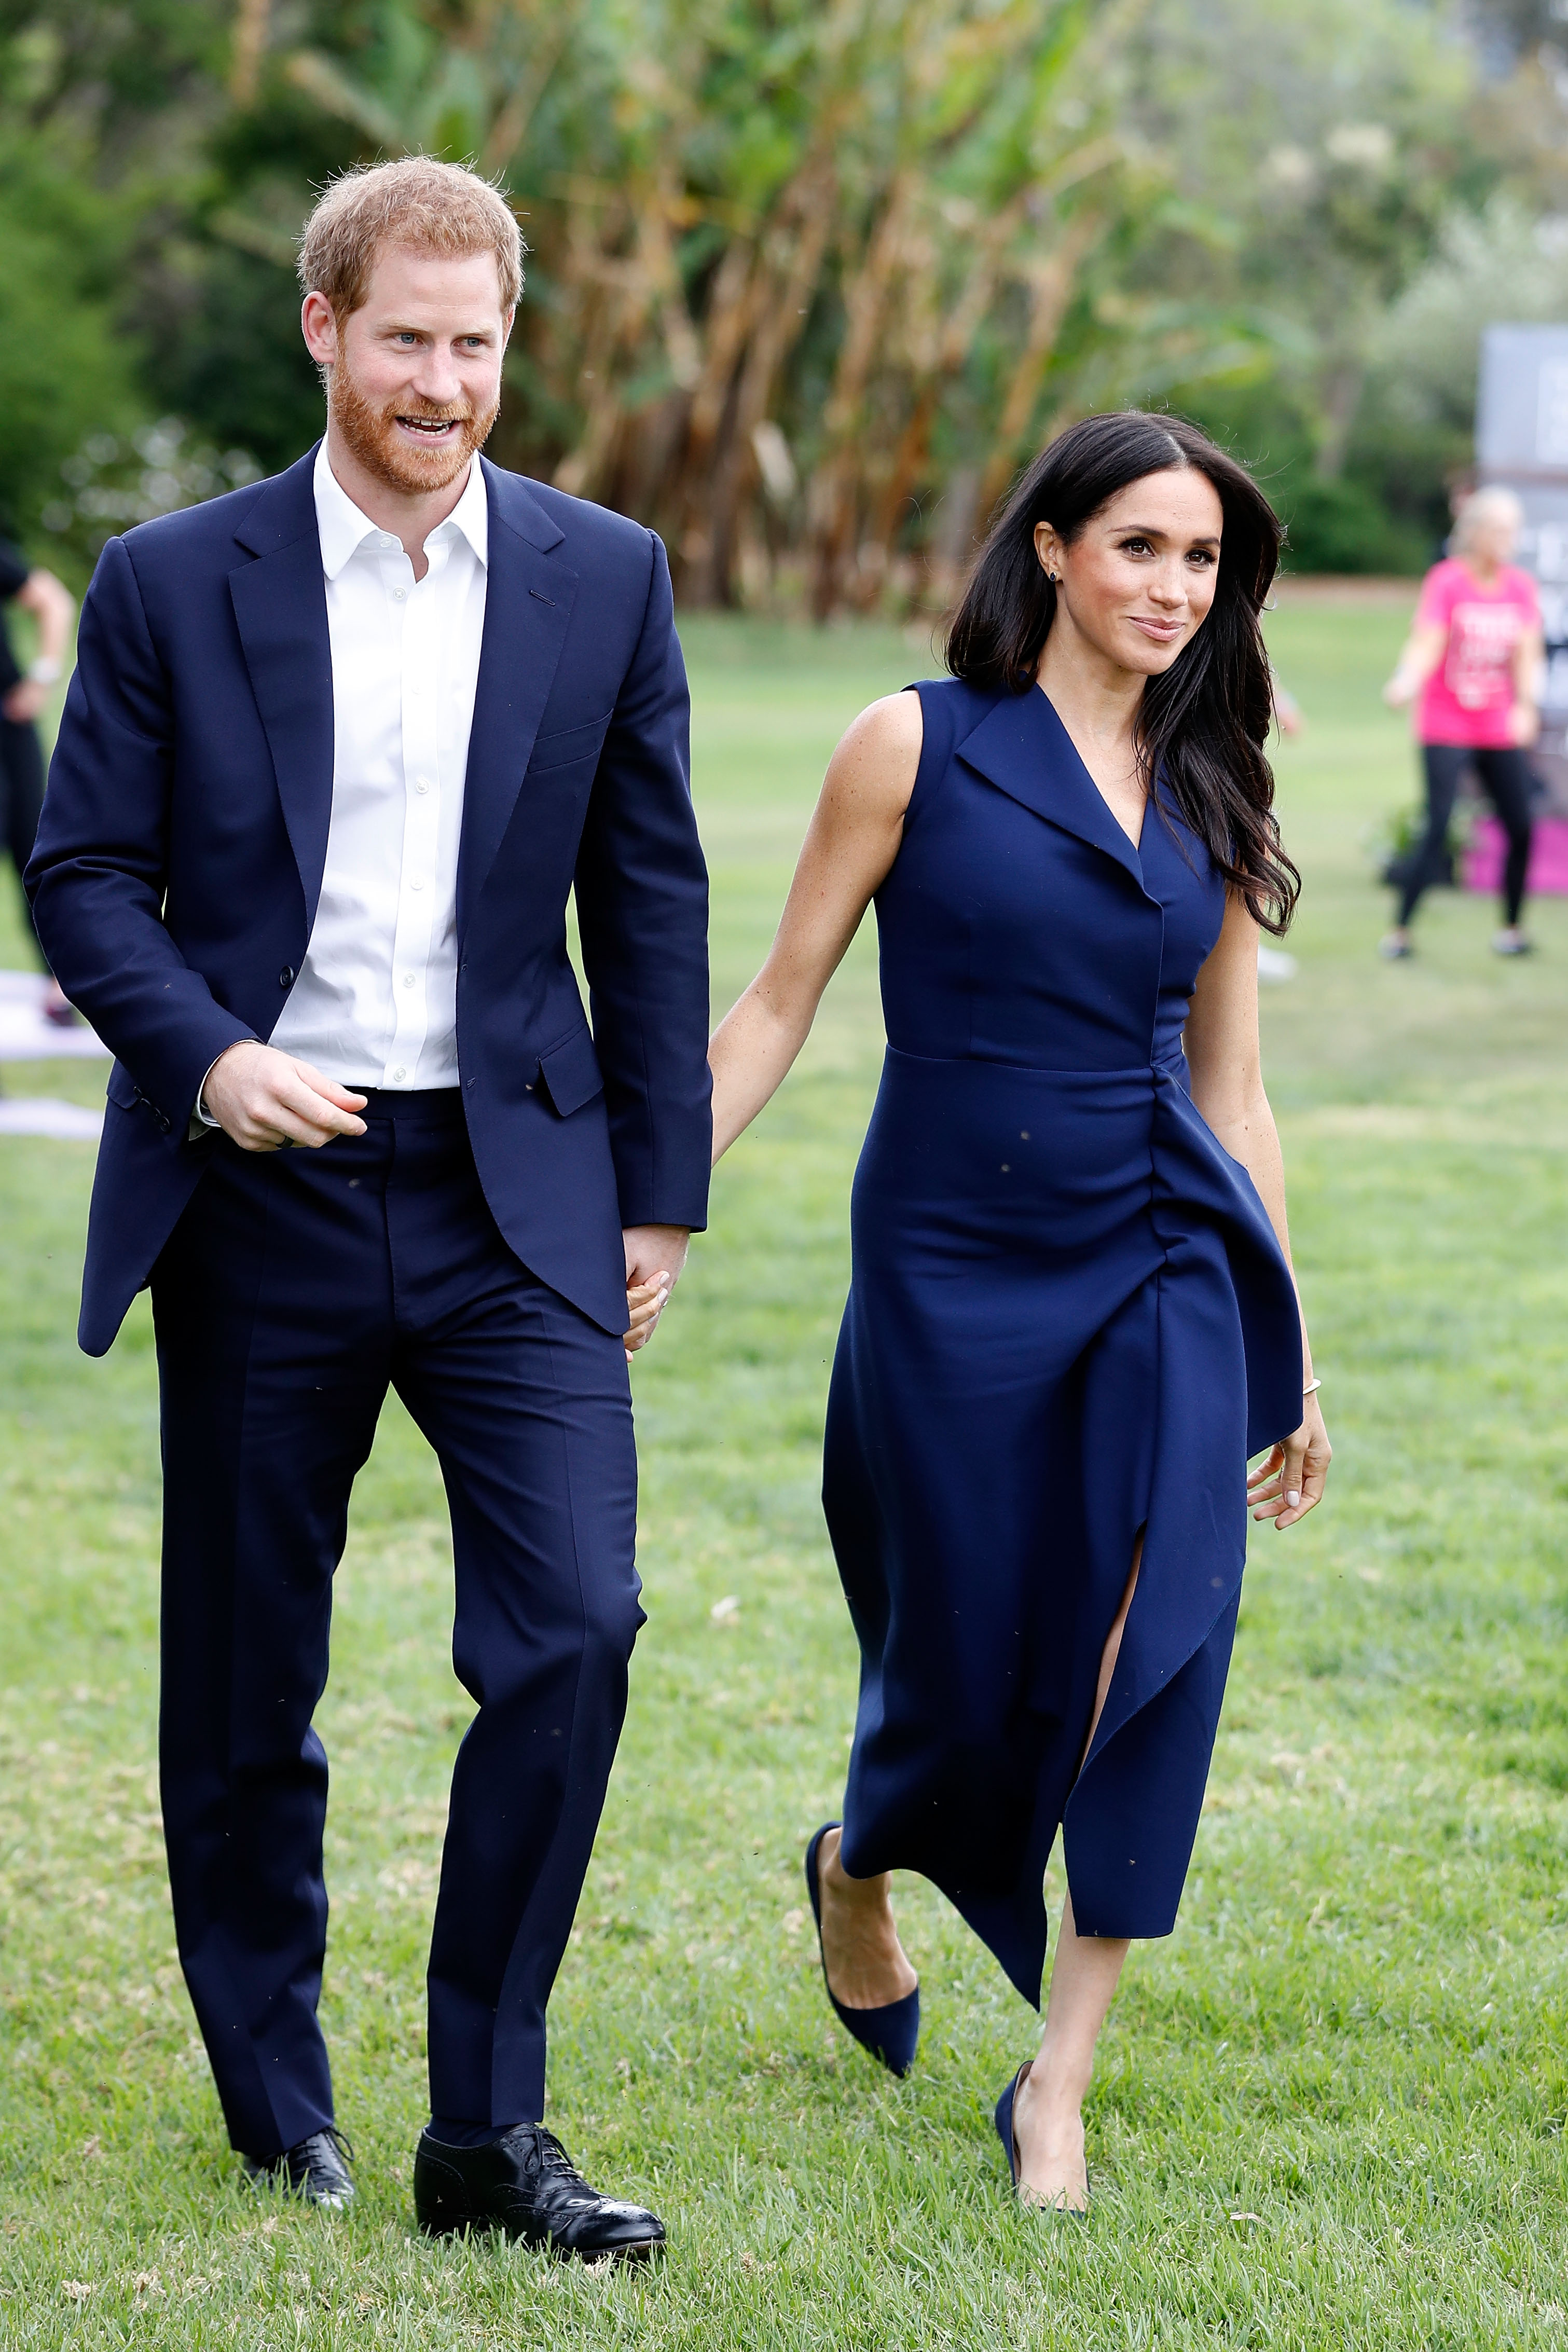 Prince Harry, Duke of Sussex and Meghan, Duchess of Sussex attend a reception at Government House on October 18, 2018, in Melbourne, Australia. The Duke and Duchess of Sussex are on their official 16-day Autumn tour visiting cities in Australia, Fiji, Tonga, and New Zealand. (Getty Images)